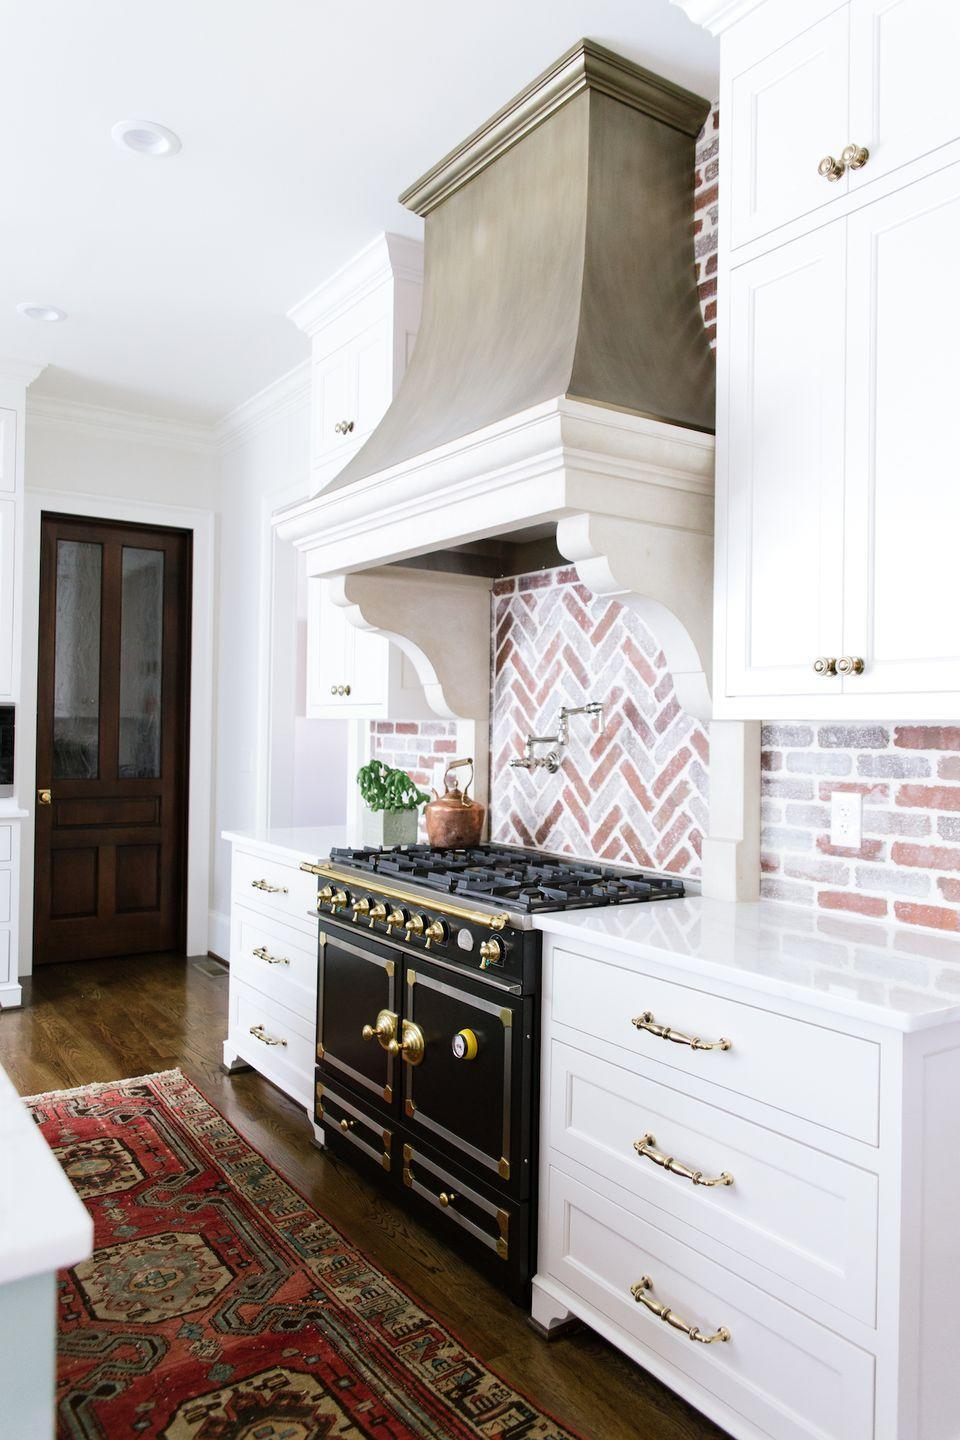 """<p>Looking for a backsplash alternative to typical subway tile? """"For 2020, we love the refined, rustic style that brick can bring to the kitchen,"""" says designer <a href=""""https://carolinebrackettdesign.com/"""" rel=""""nofollow noopener"""" target=""""_blank"""" data-ylk=""""slk:Caroline Brackett"""" class=""""link rapid-noclick-resp"""">Caroline Brackett</a>. """"If the heaviness of a red brick feels a little too daunting, try white-washing a few of the bricks to brighten up the space.""""</p>"""